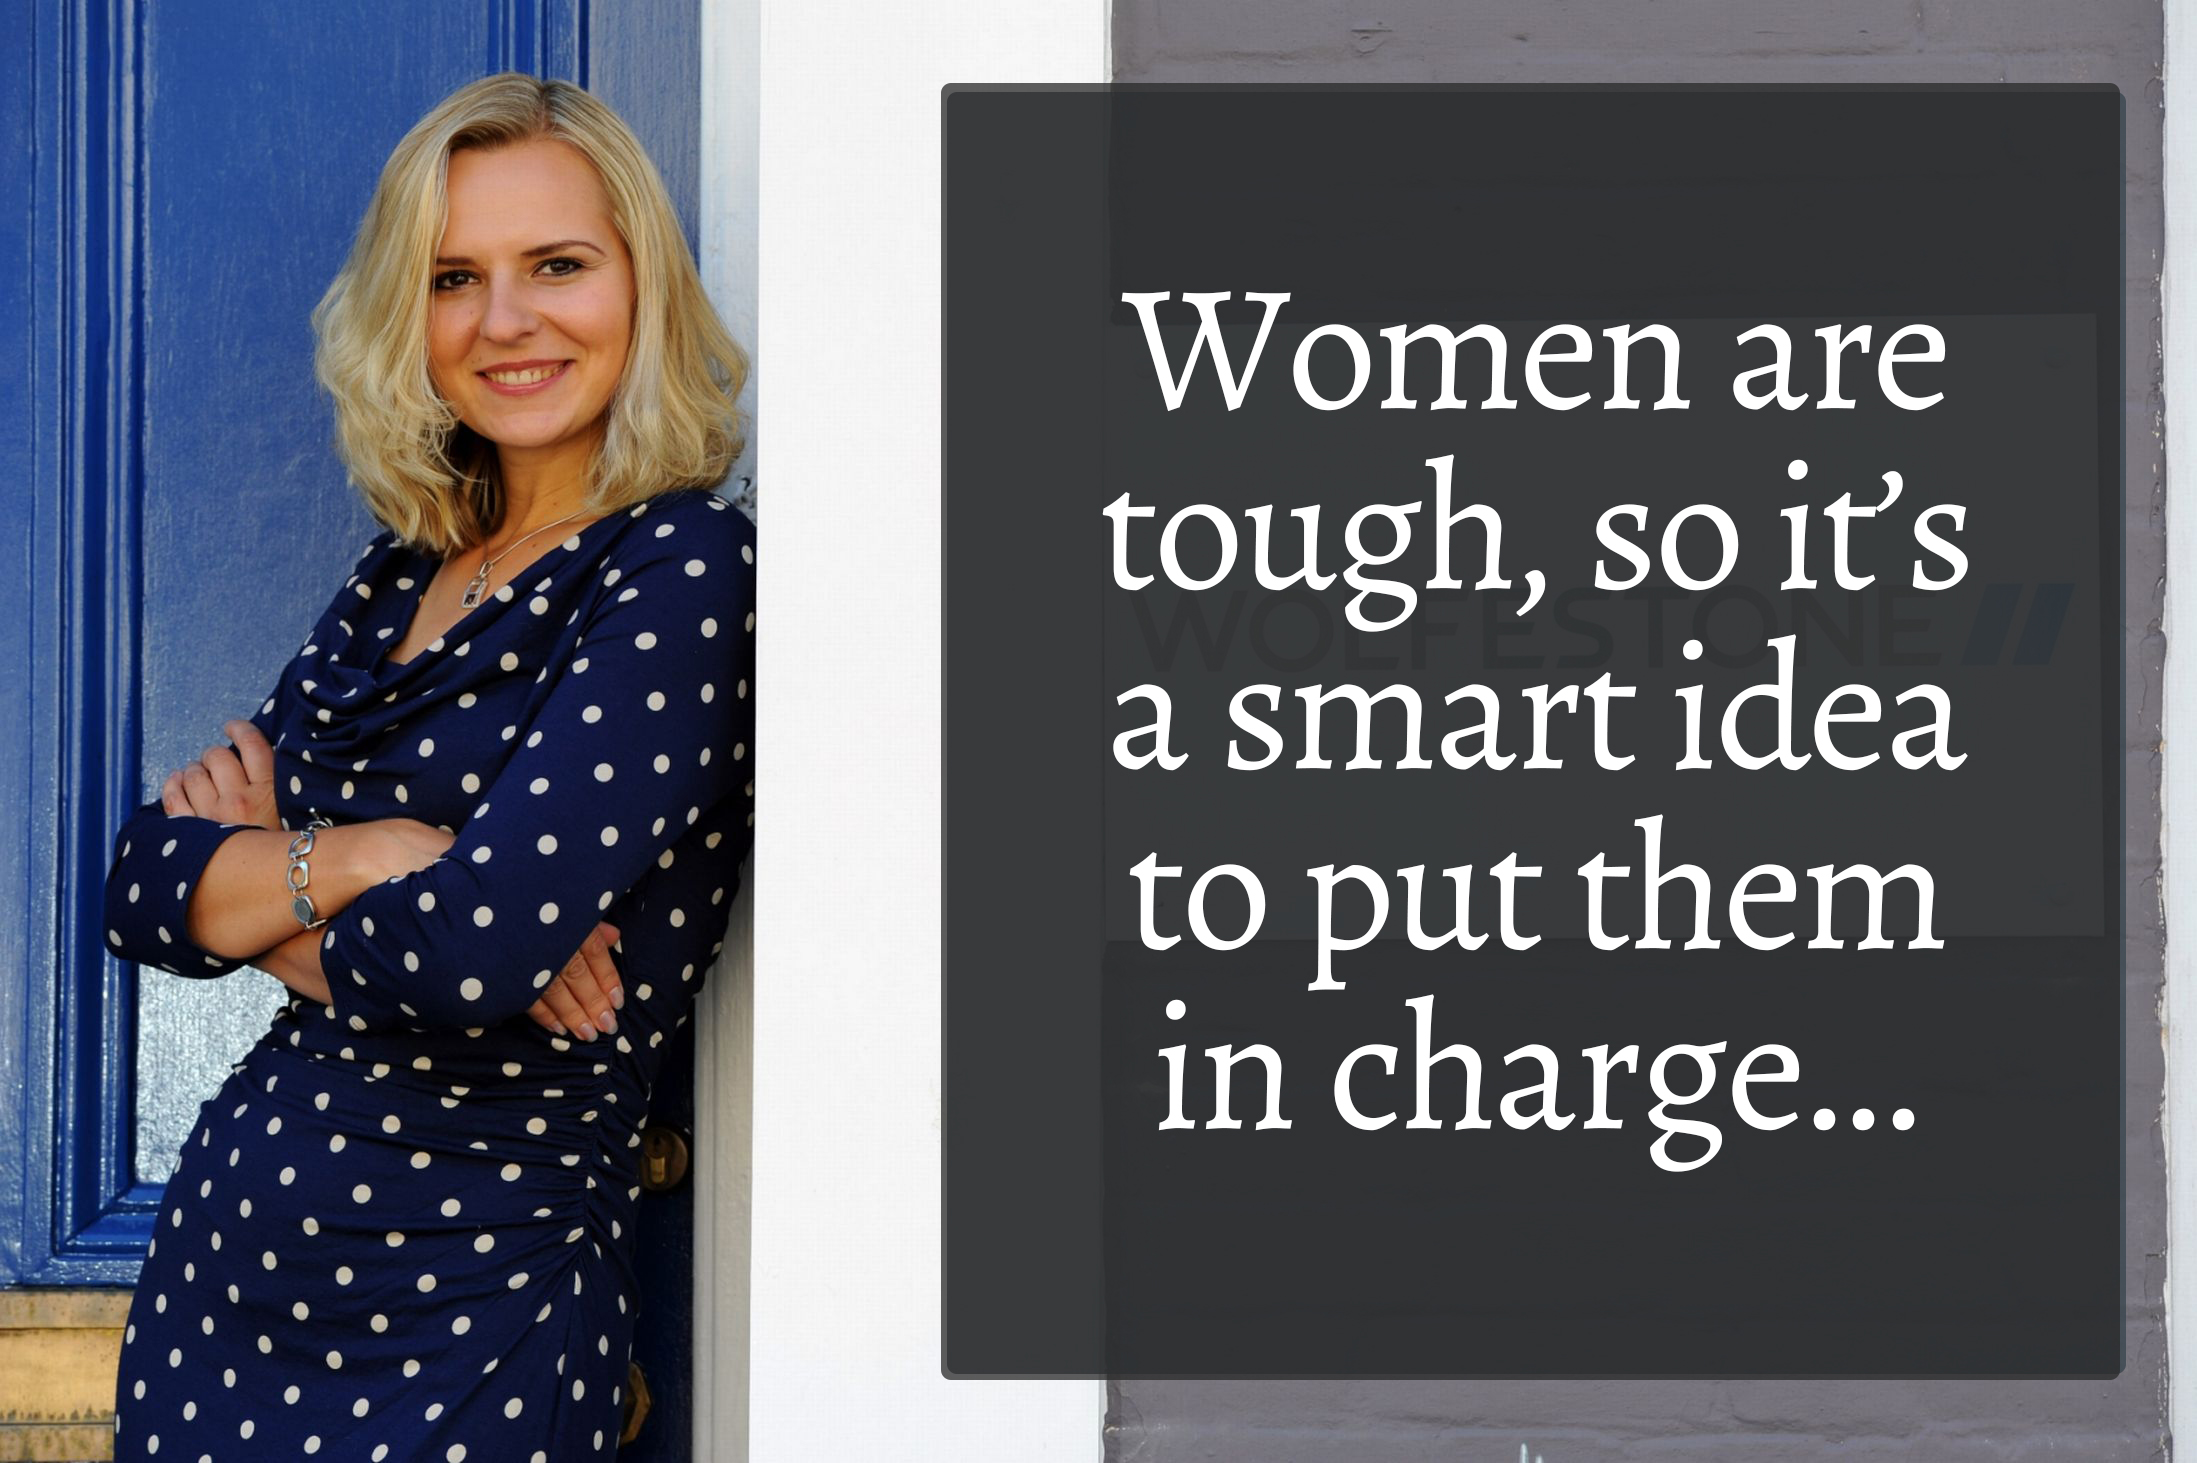 """Left-hand side of image is Anna; Right-hand side of image is article headline """"Women are tough, so it's a smart idea to put them in charge...."""""""